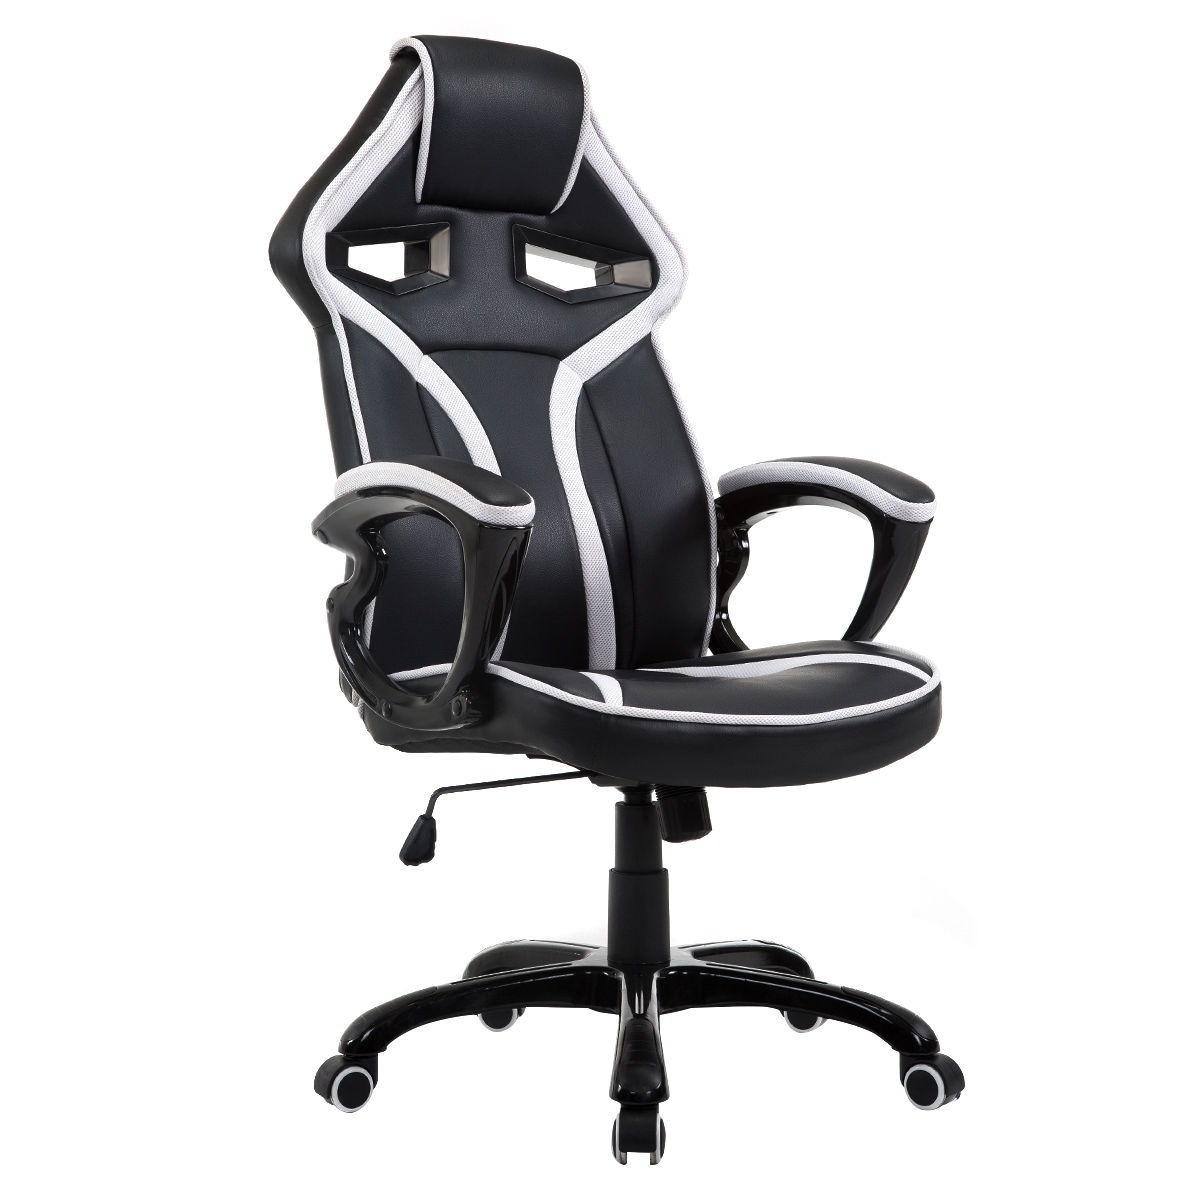 Delicieux Shop Costway Race Car Style Bucket Seat Office Chair High Back Racing  Gaming Chair Desk Task   Free Shipping Today   Overstock.com   16639888